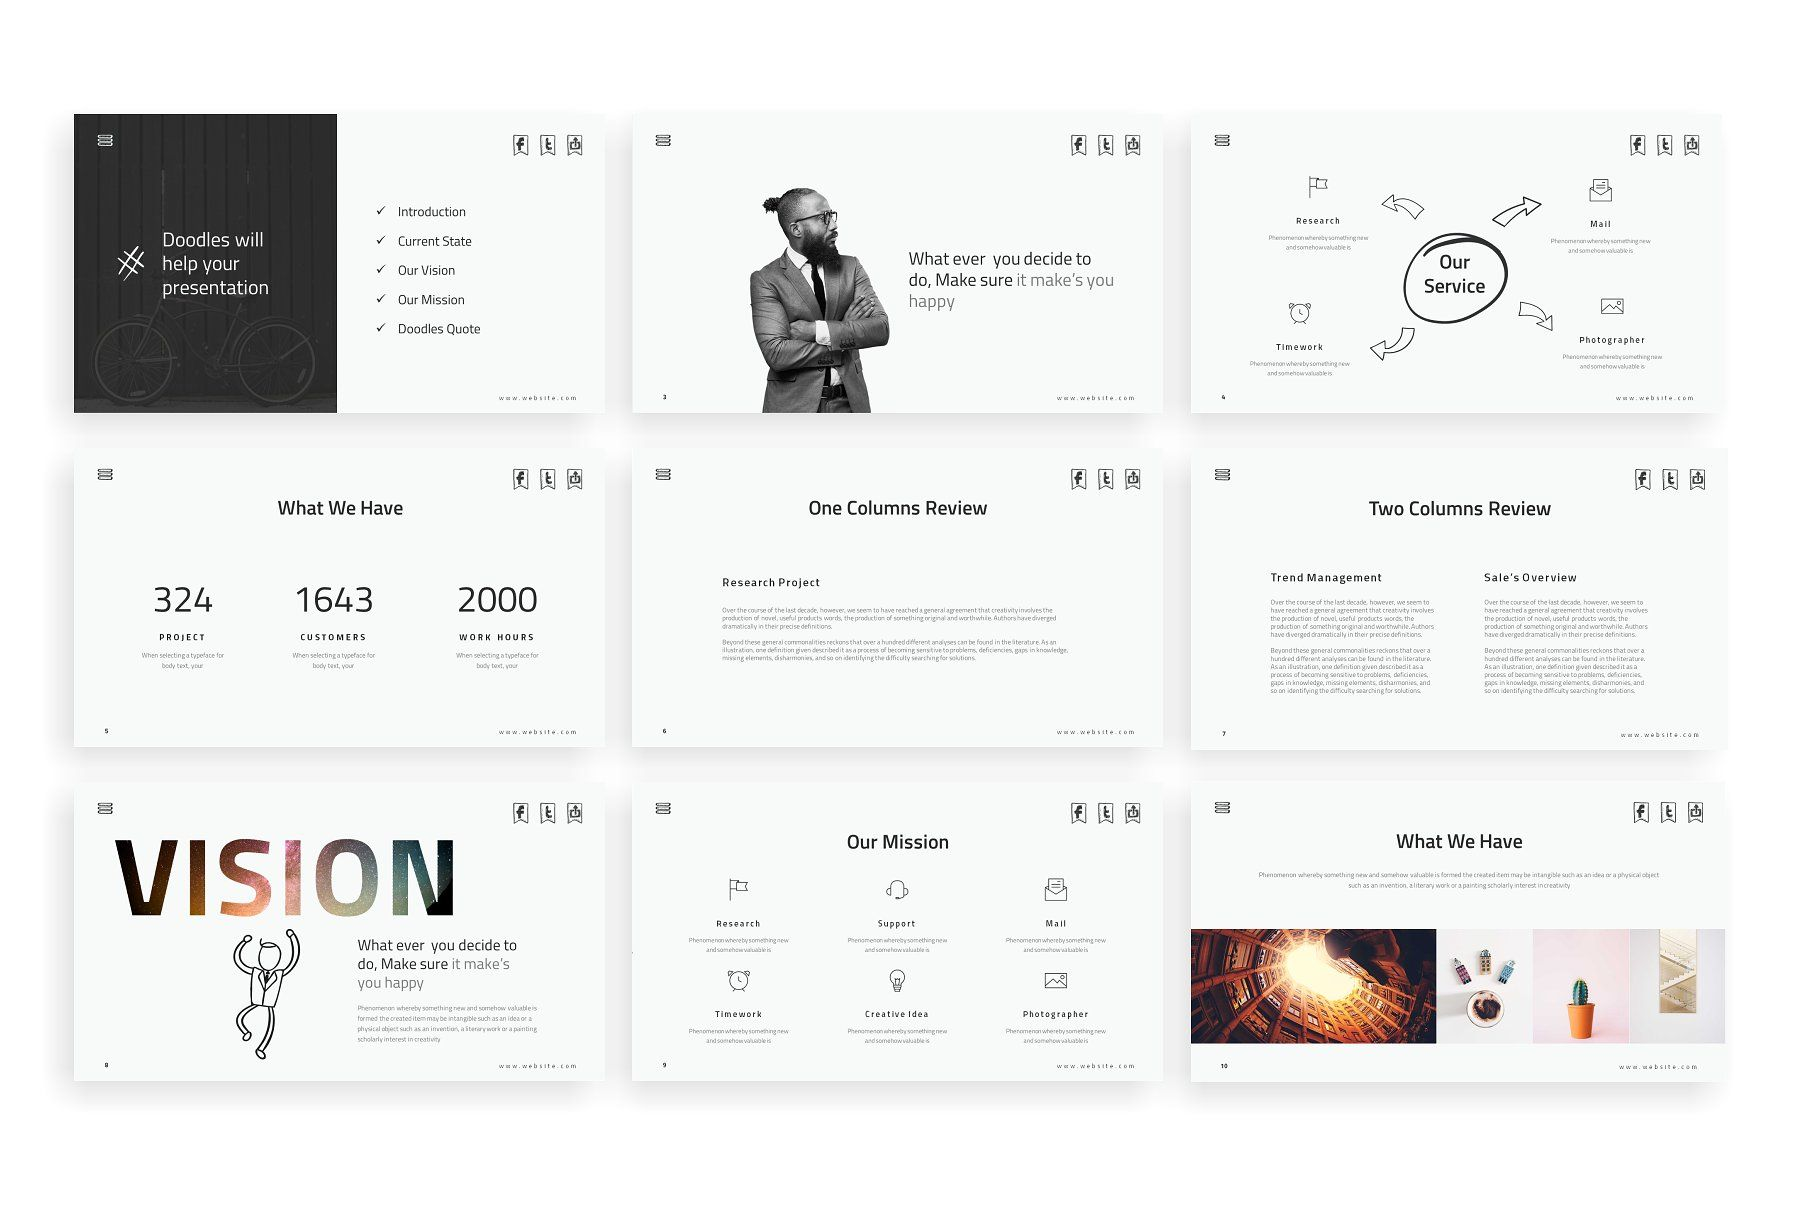 Doodles - Powerpoint Template #Pages#Documentation#PDF#Vector